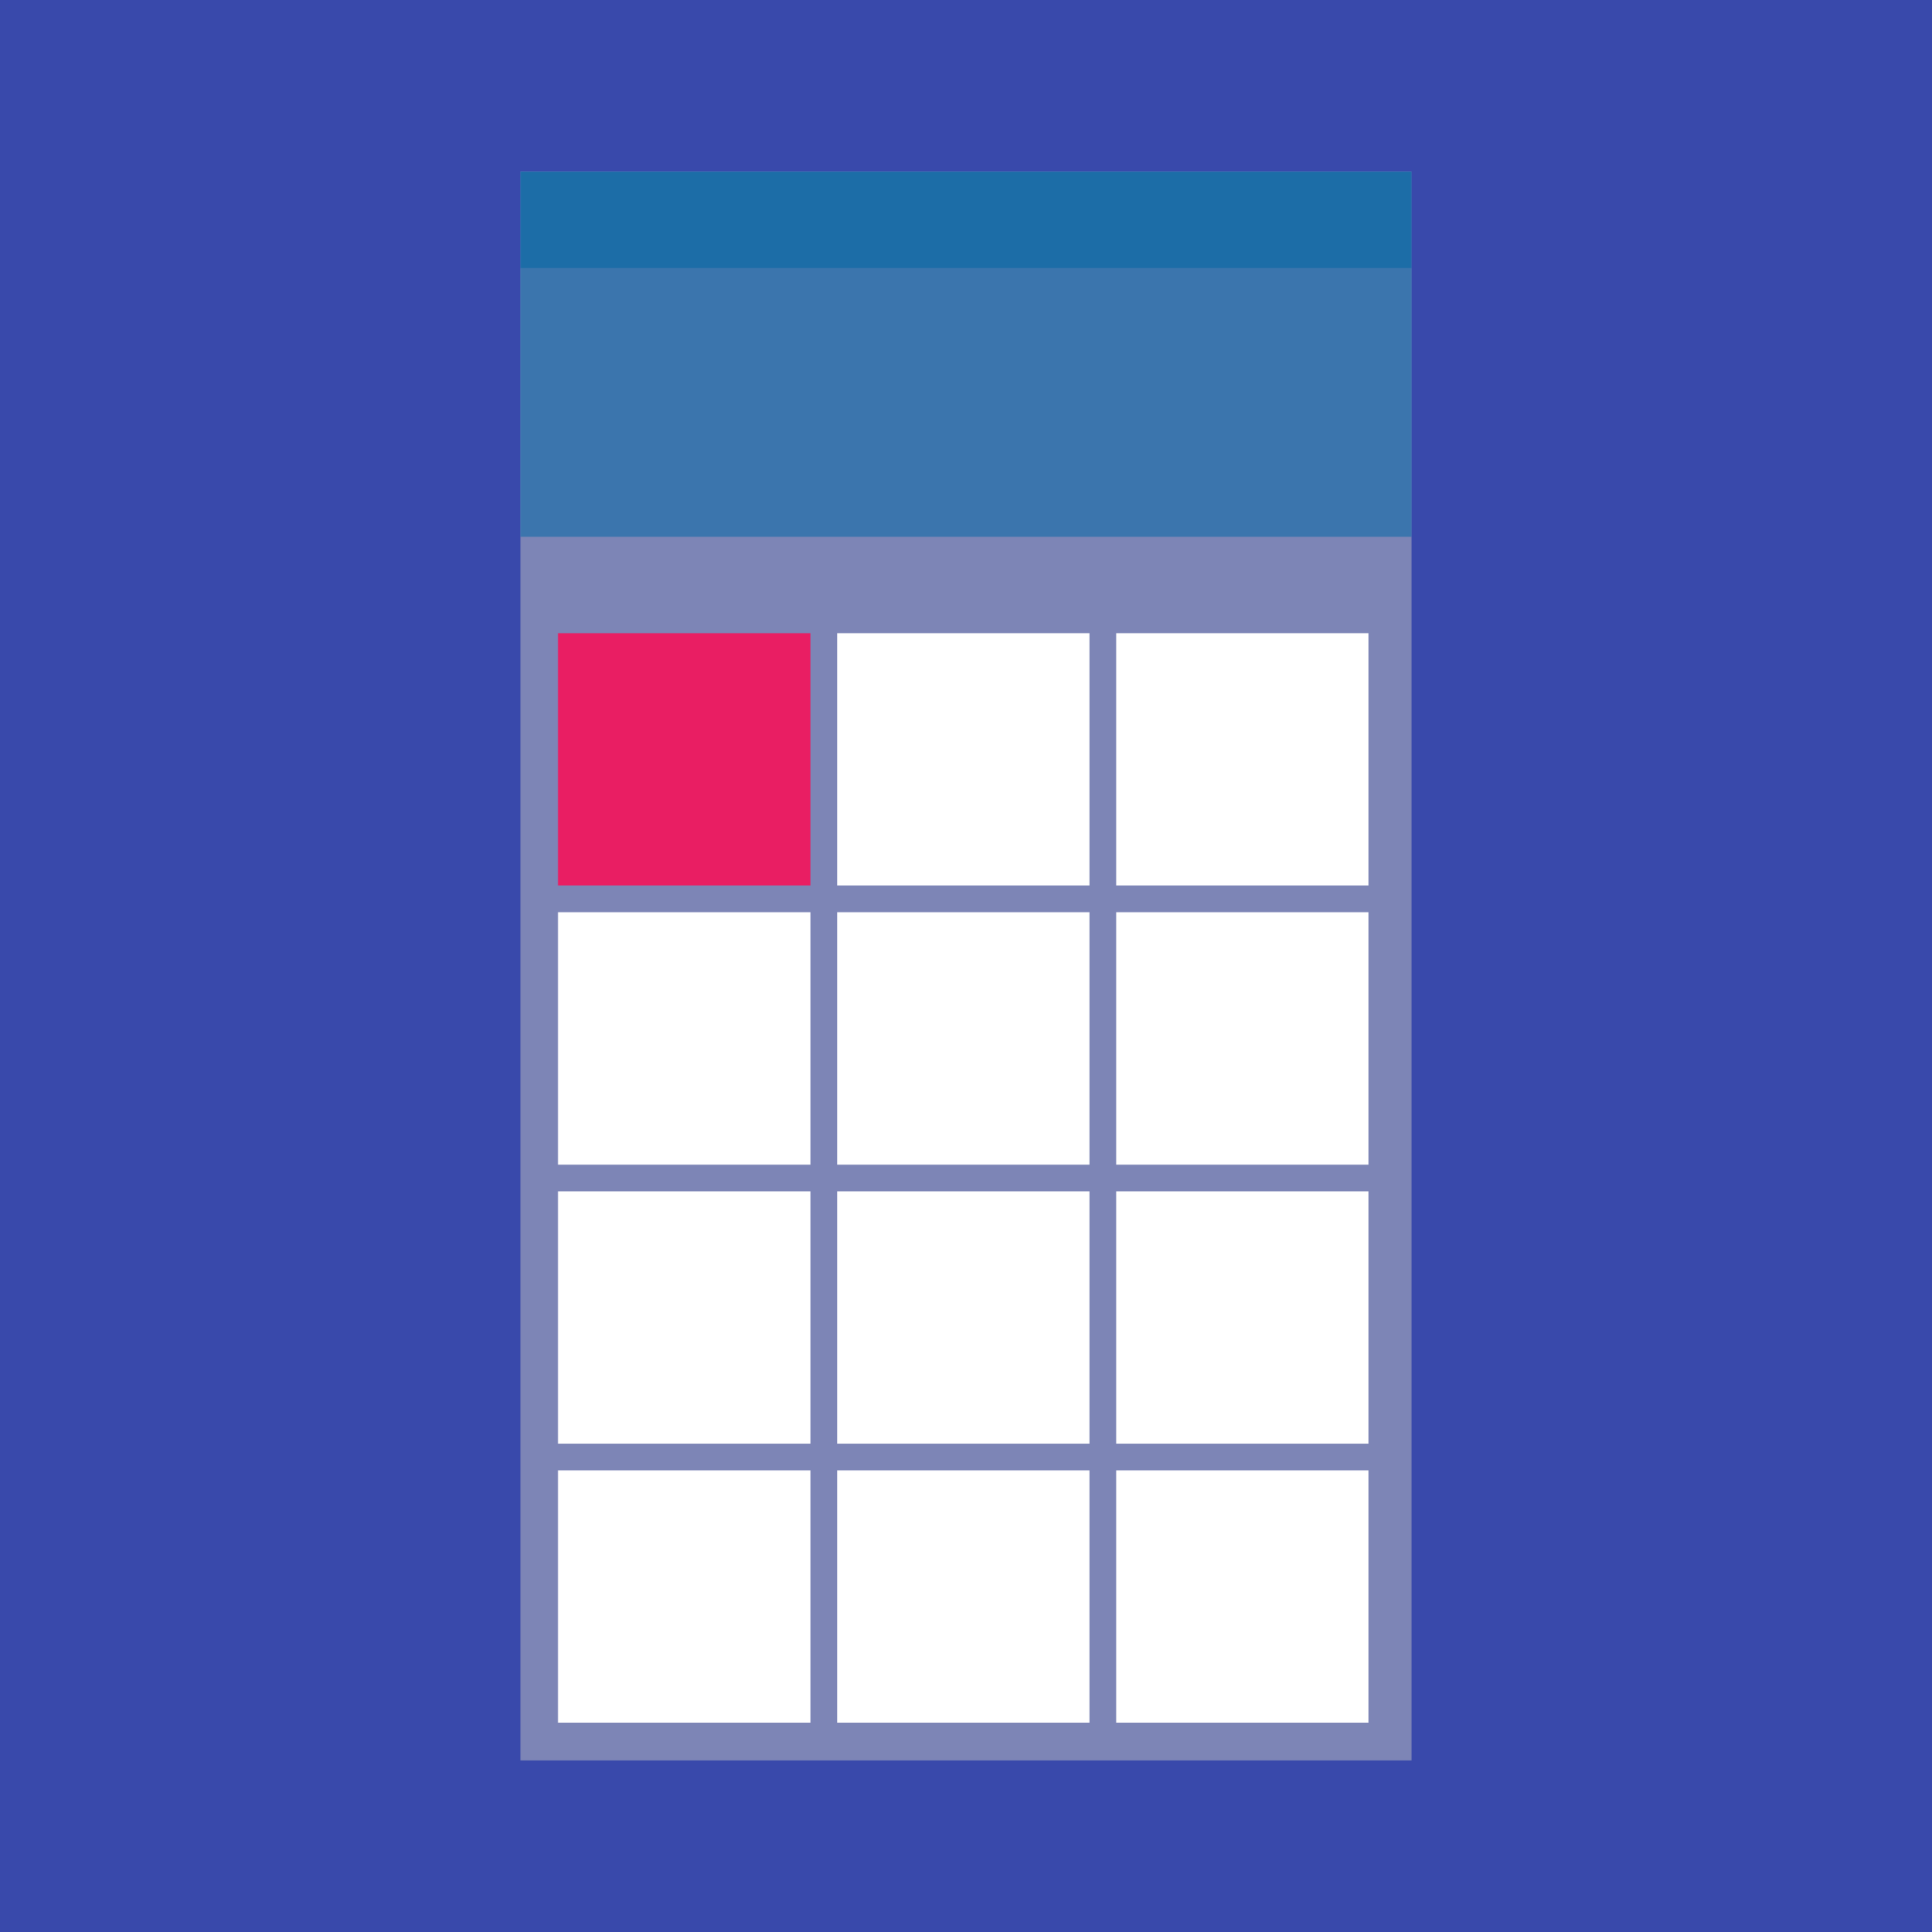 Grid lists - Components - Material Design